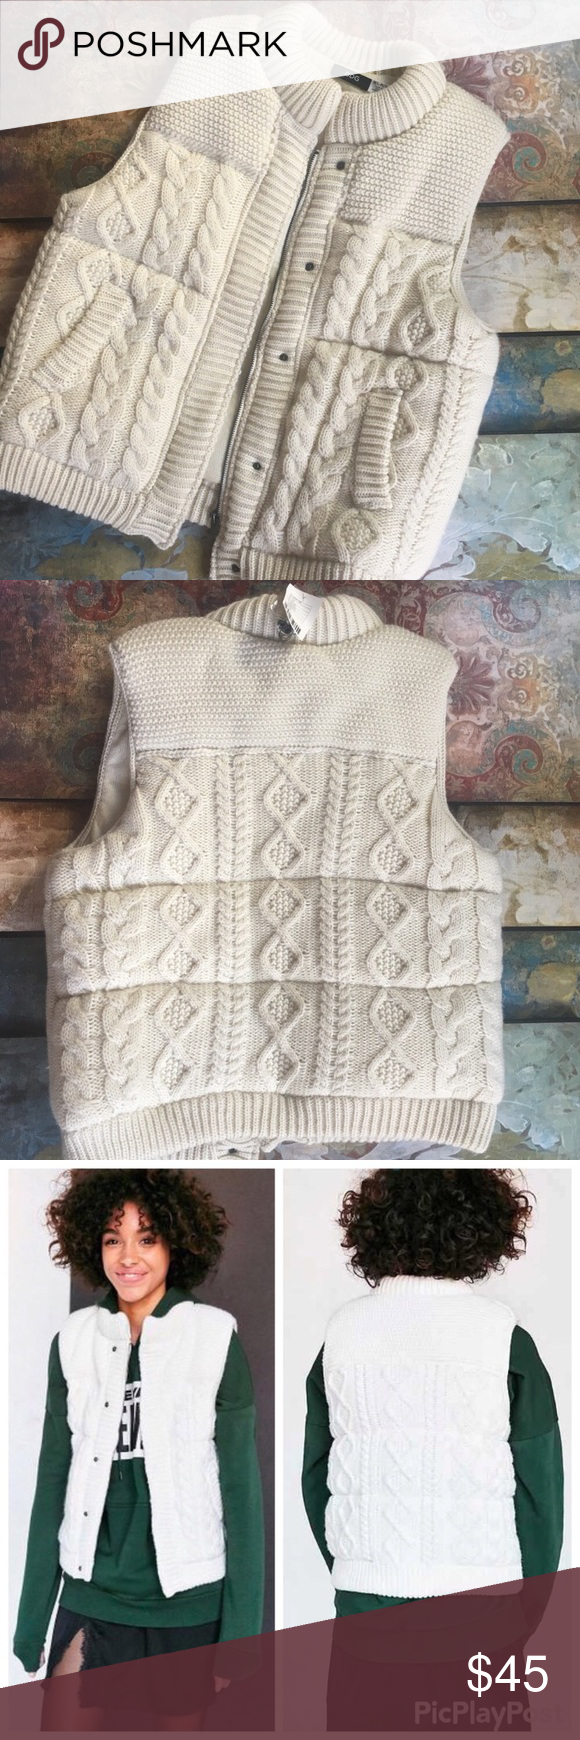 Urban Outfitters Bdg Cable Knit Sweater Vest Urban Outfitters Bdg Cable Knit Sweater Puffer Vest Cream Outerwear Sweetheart Womens Cable Knit Sweaters Sweaters Urban Outfitters